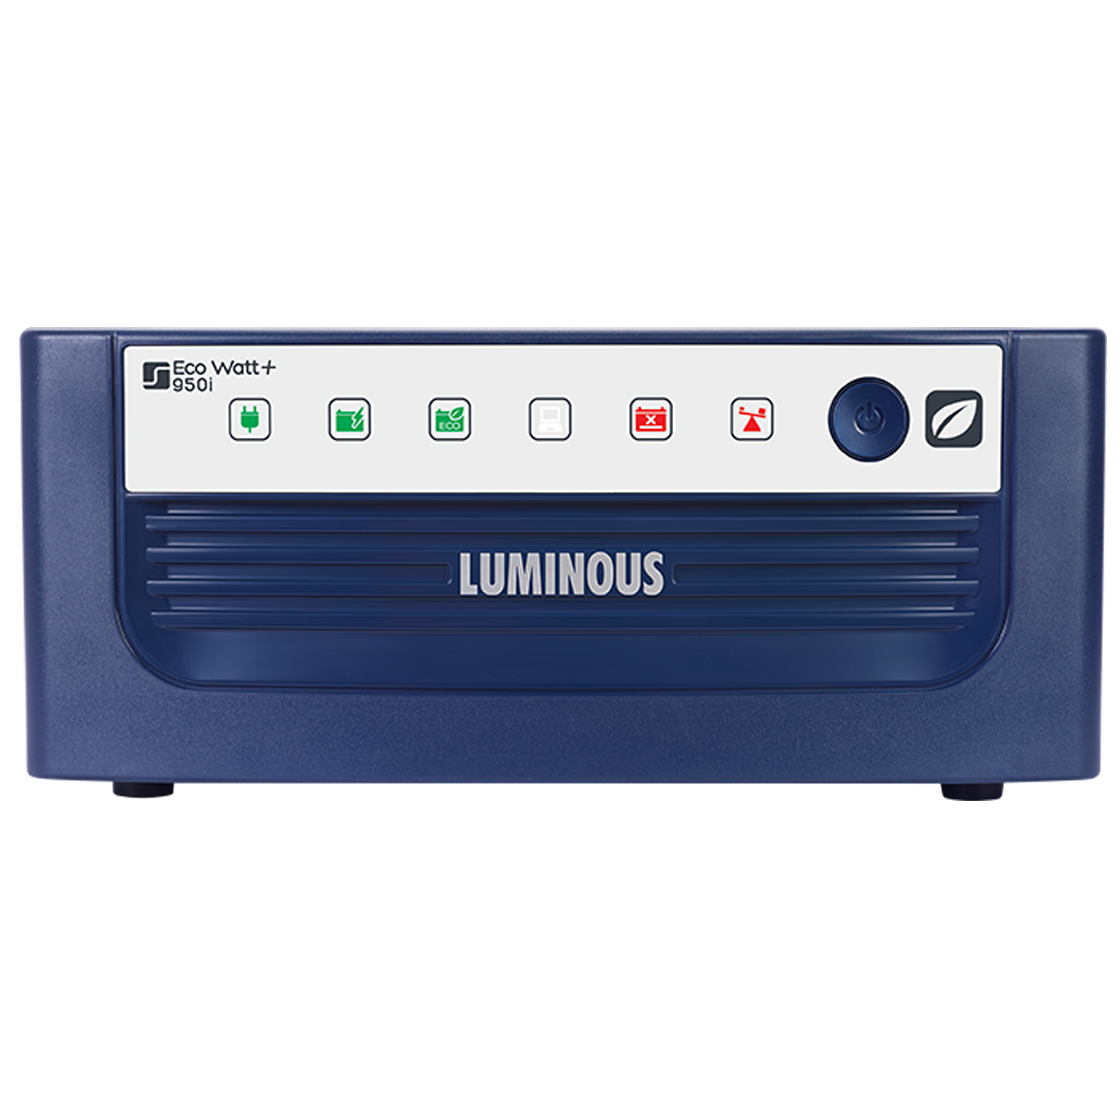 LUMINOUS Eco Watt+ 900VA/12V ECO